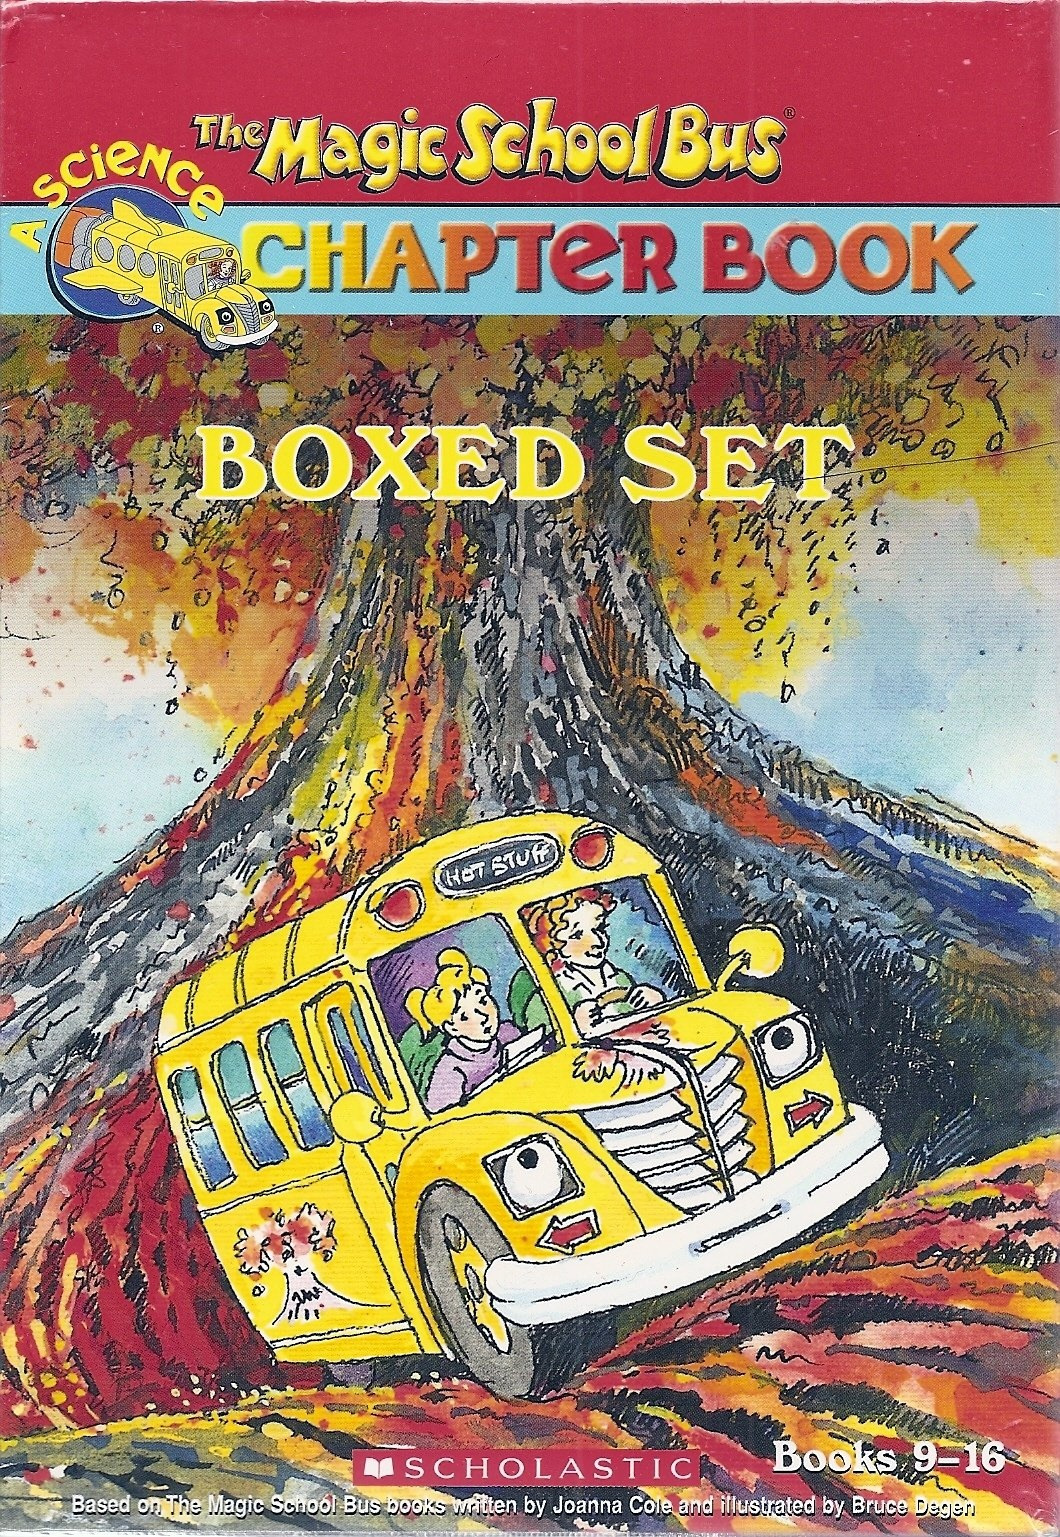 The Magic School Bus Chapter Book Boxed Set, Books 9-16 by Anne Capeci, Rebecca Carmi, Nancy Whit Judith Bauer Stamper, ISBN: 9780439688765